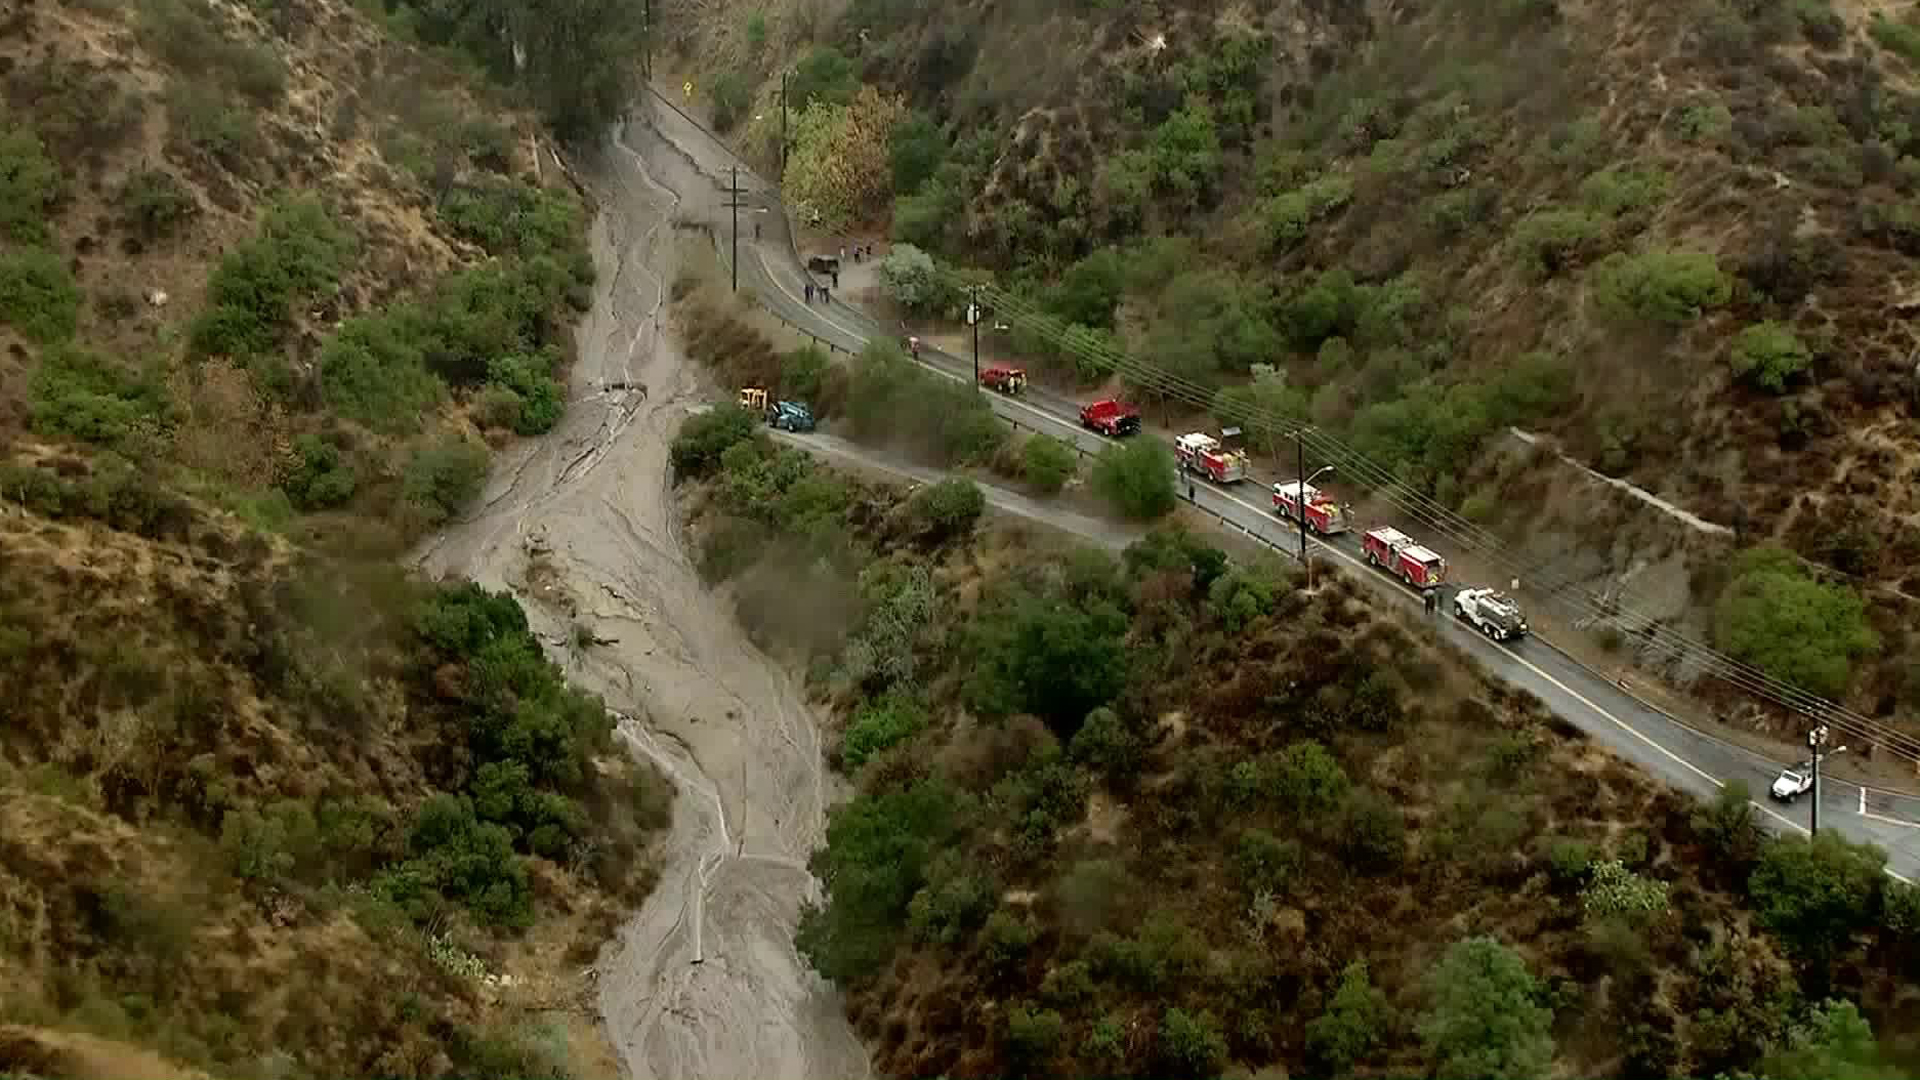 Mud flows block Country Club Lane in Burbank on Jan. 9, 2018. (Credit: KTLA)